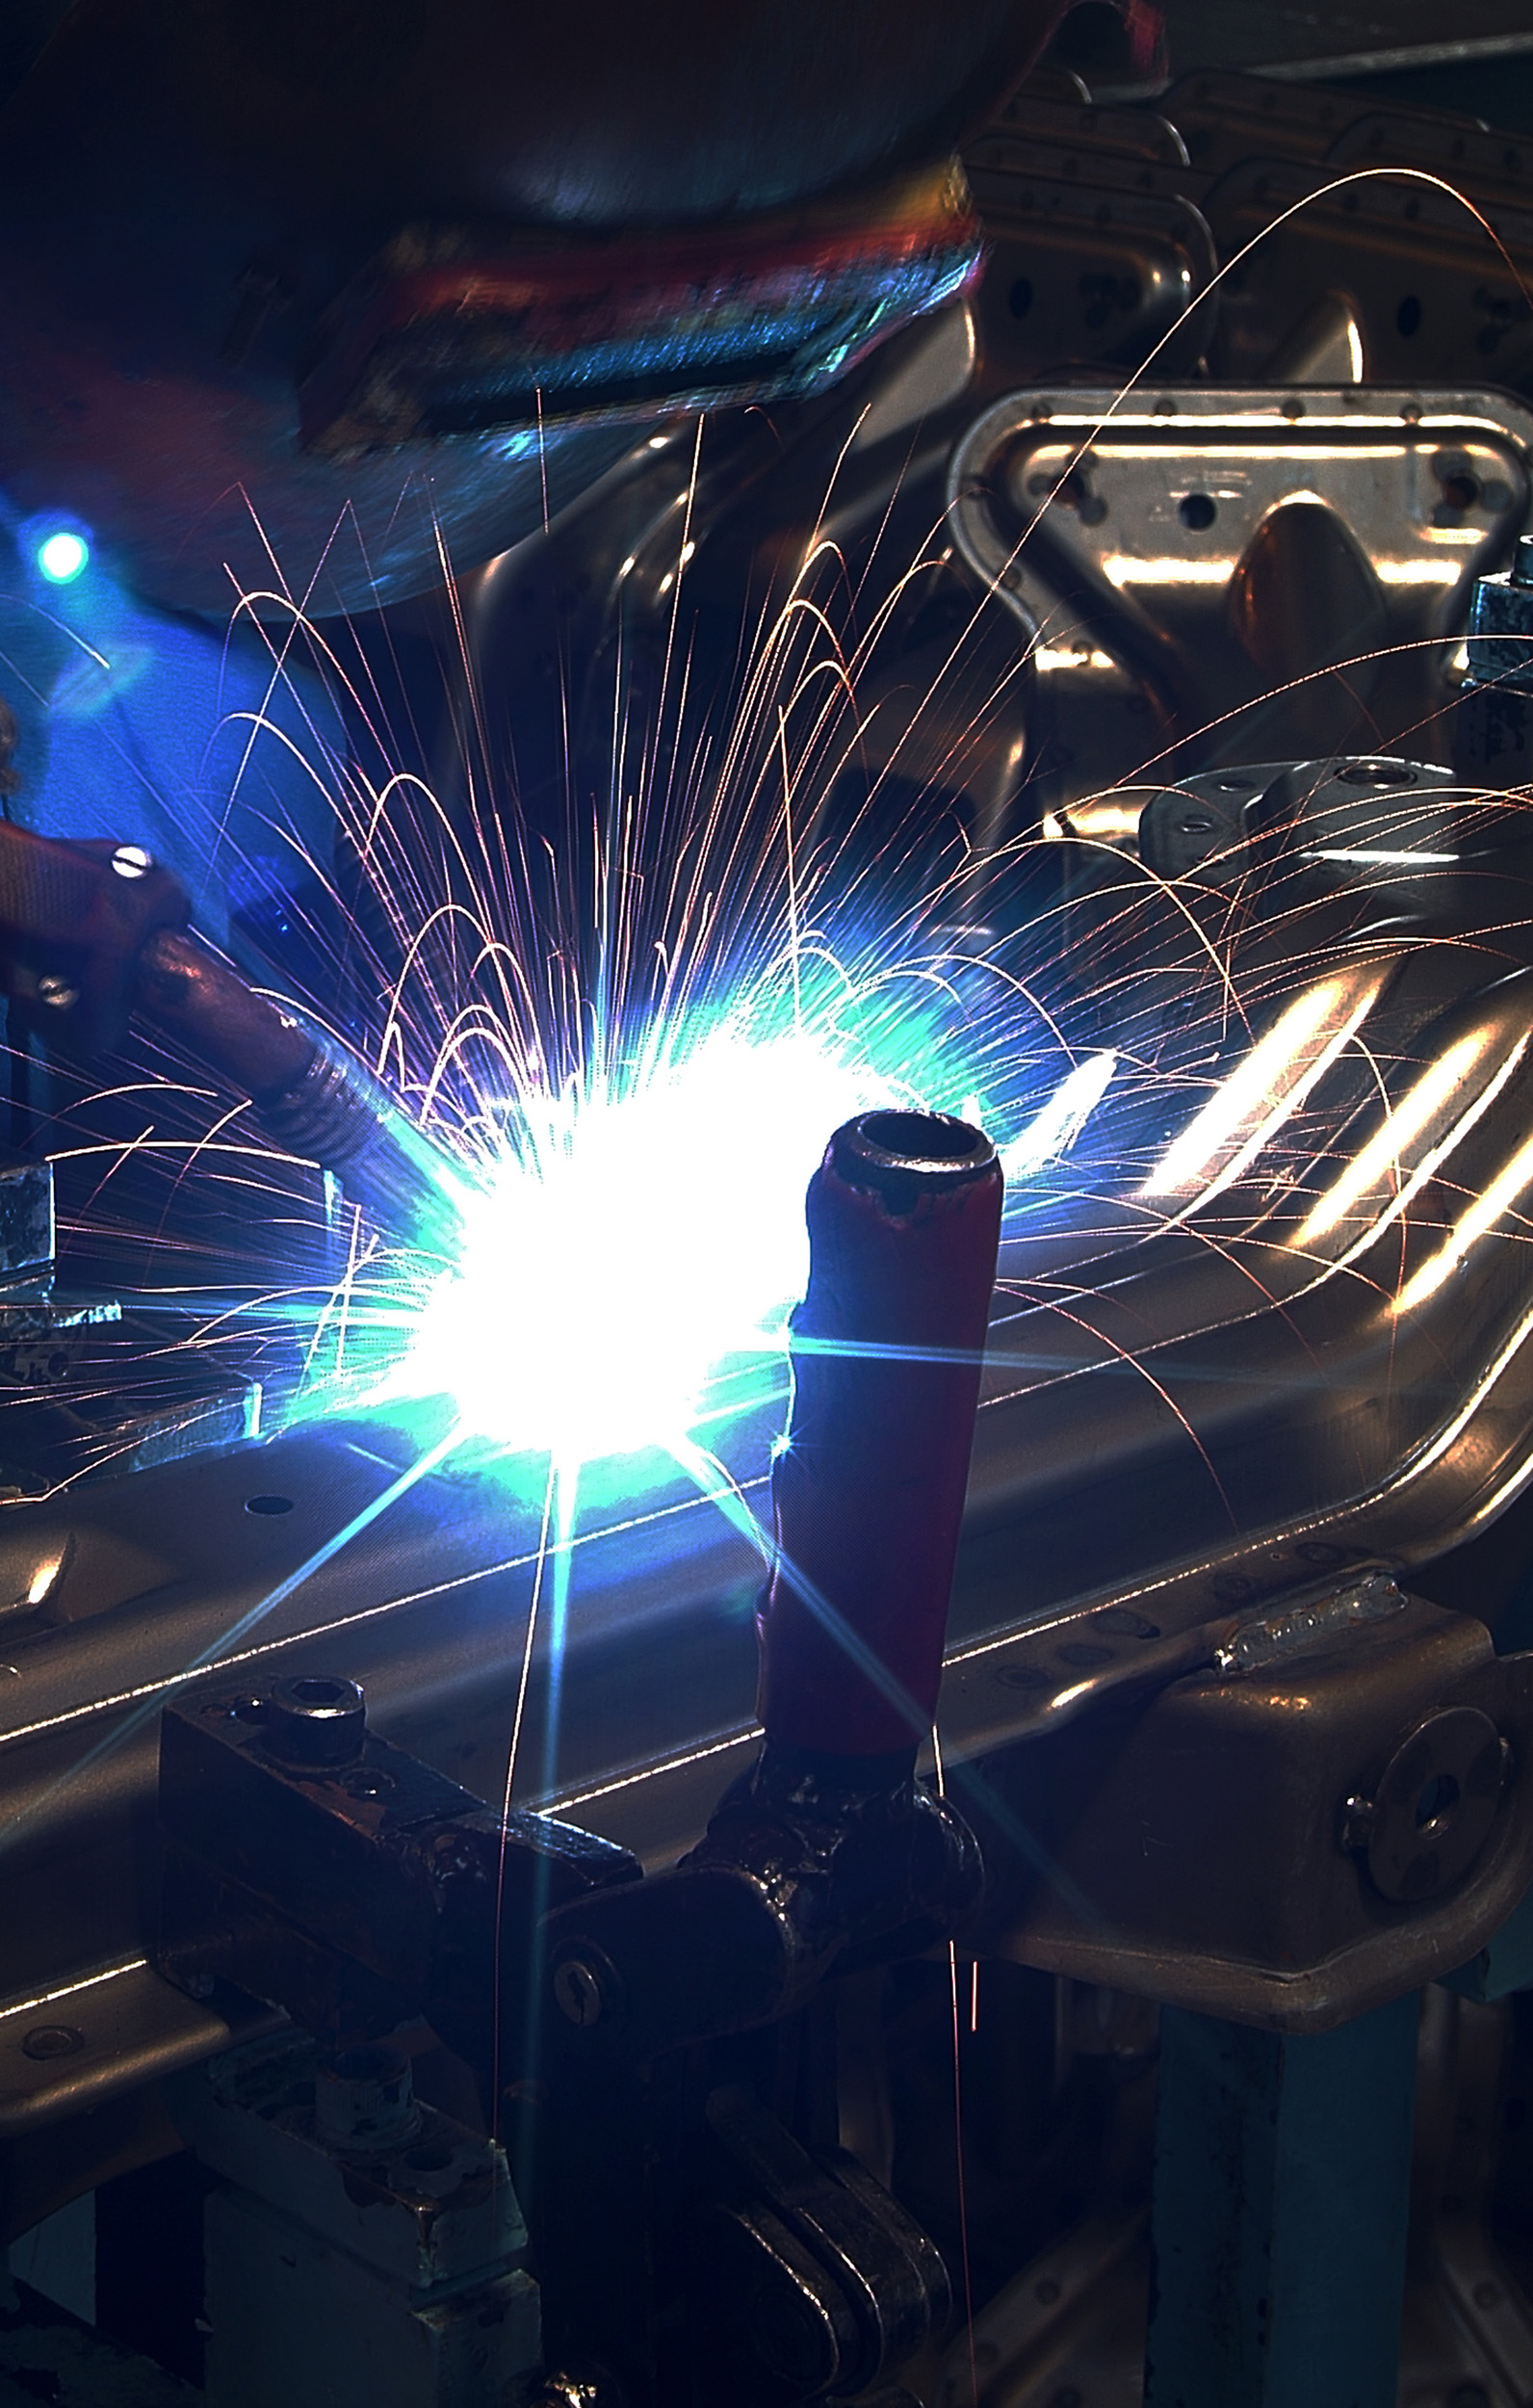 Welder at work.jpg